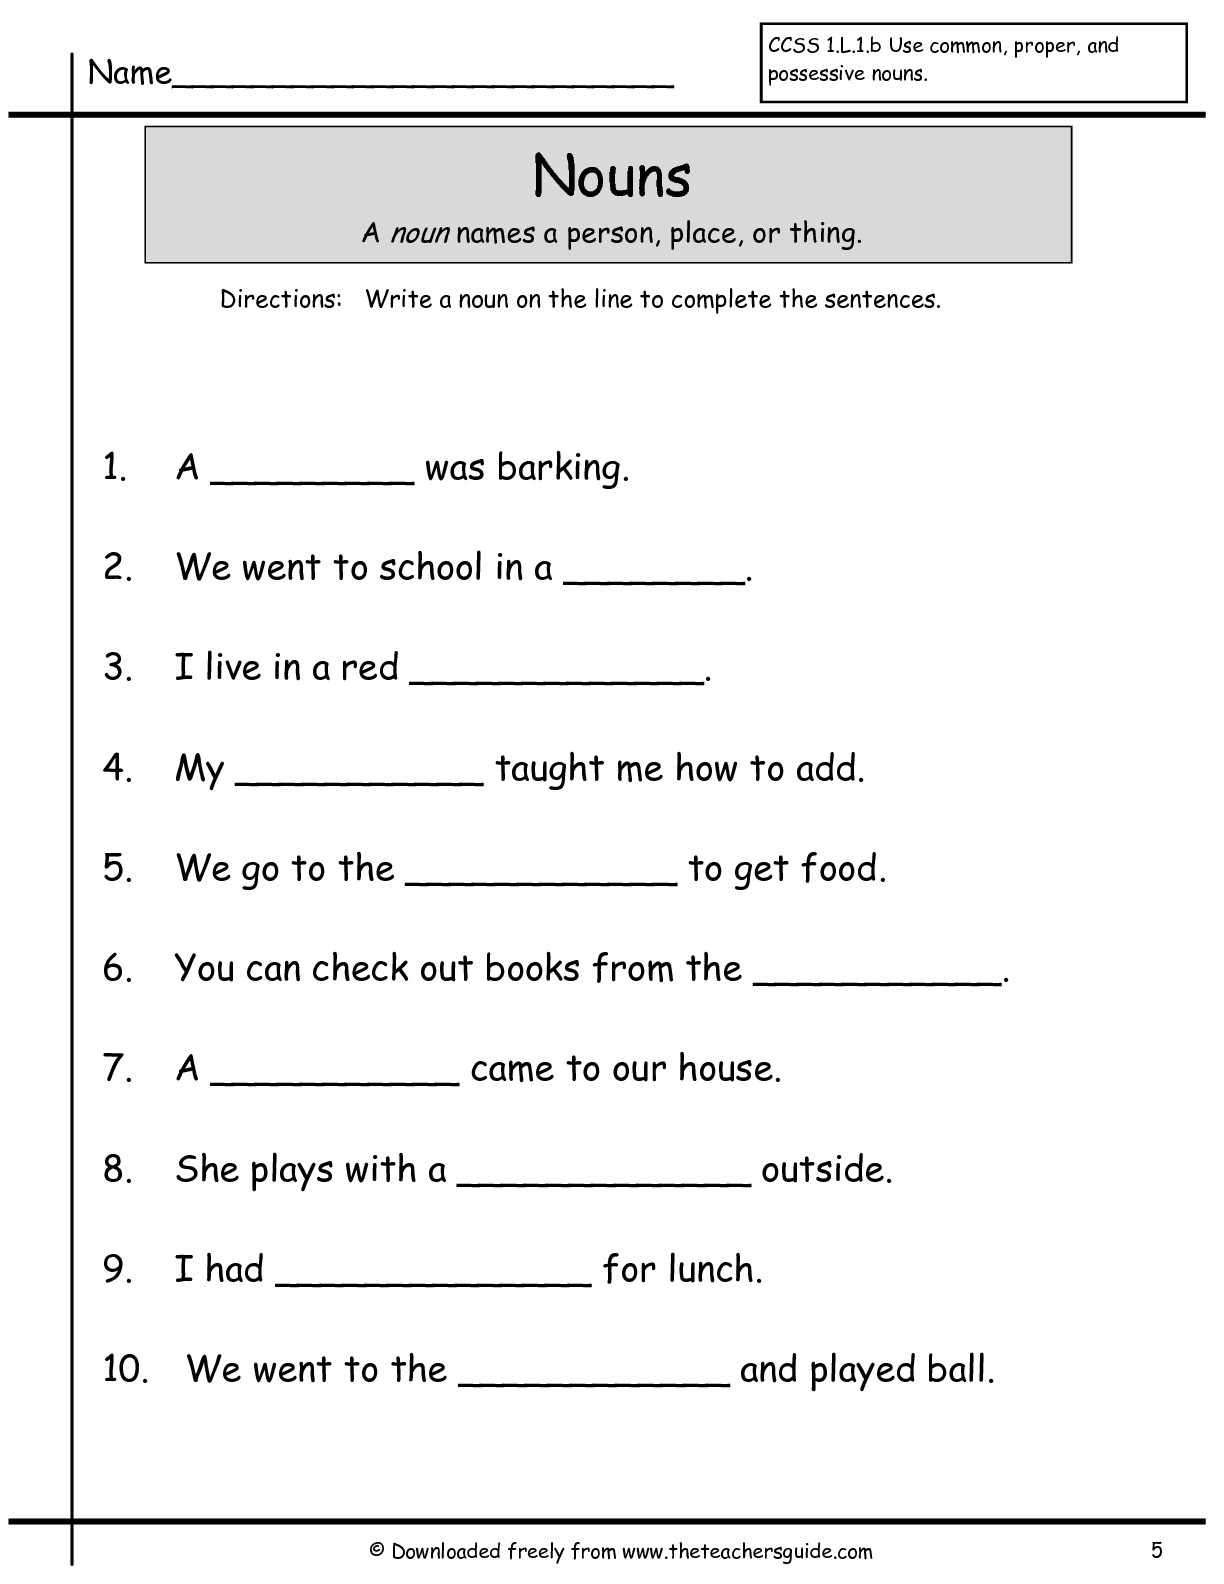 Reading Comprehension Worksheets Free Printable 1st Grade Deployday – 1st Grade Comprehension Worksheets